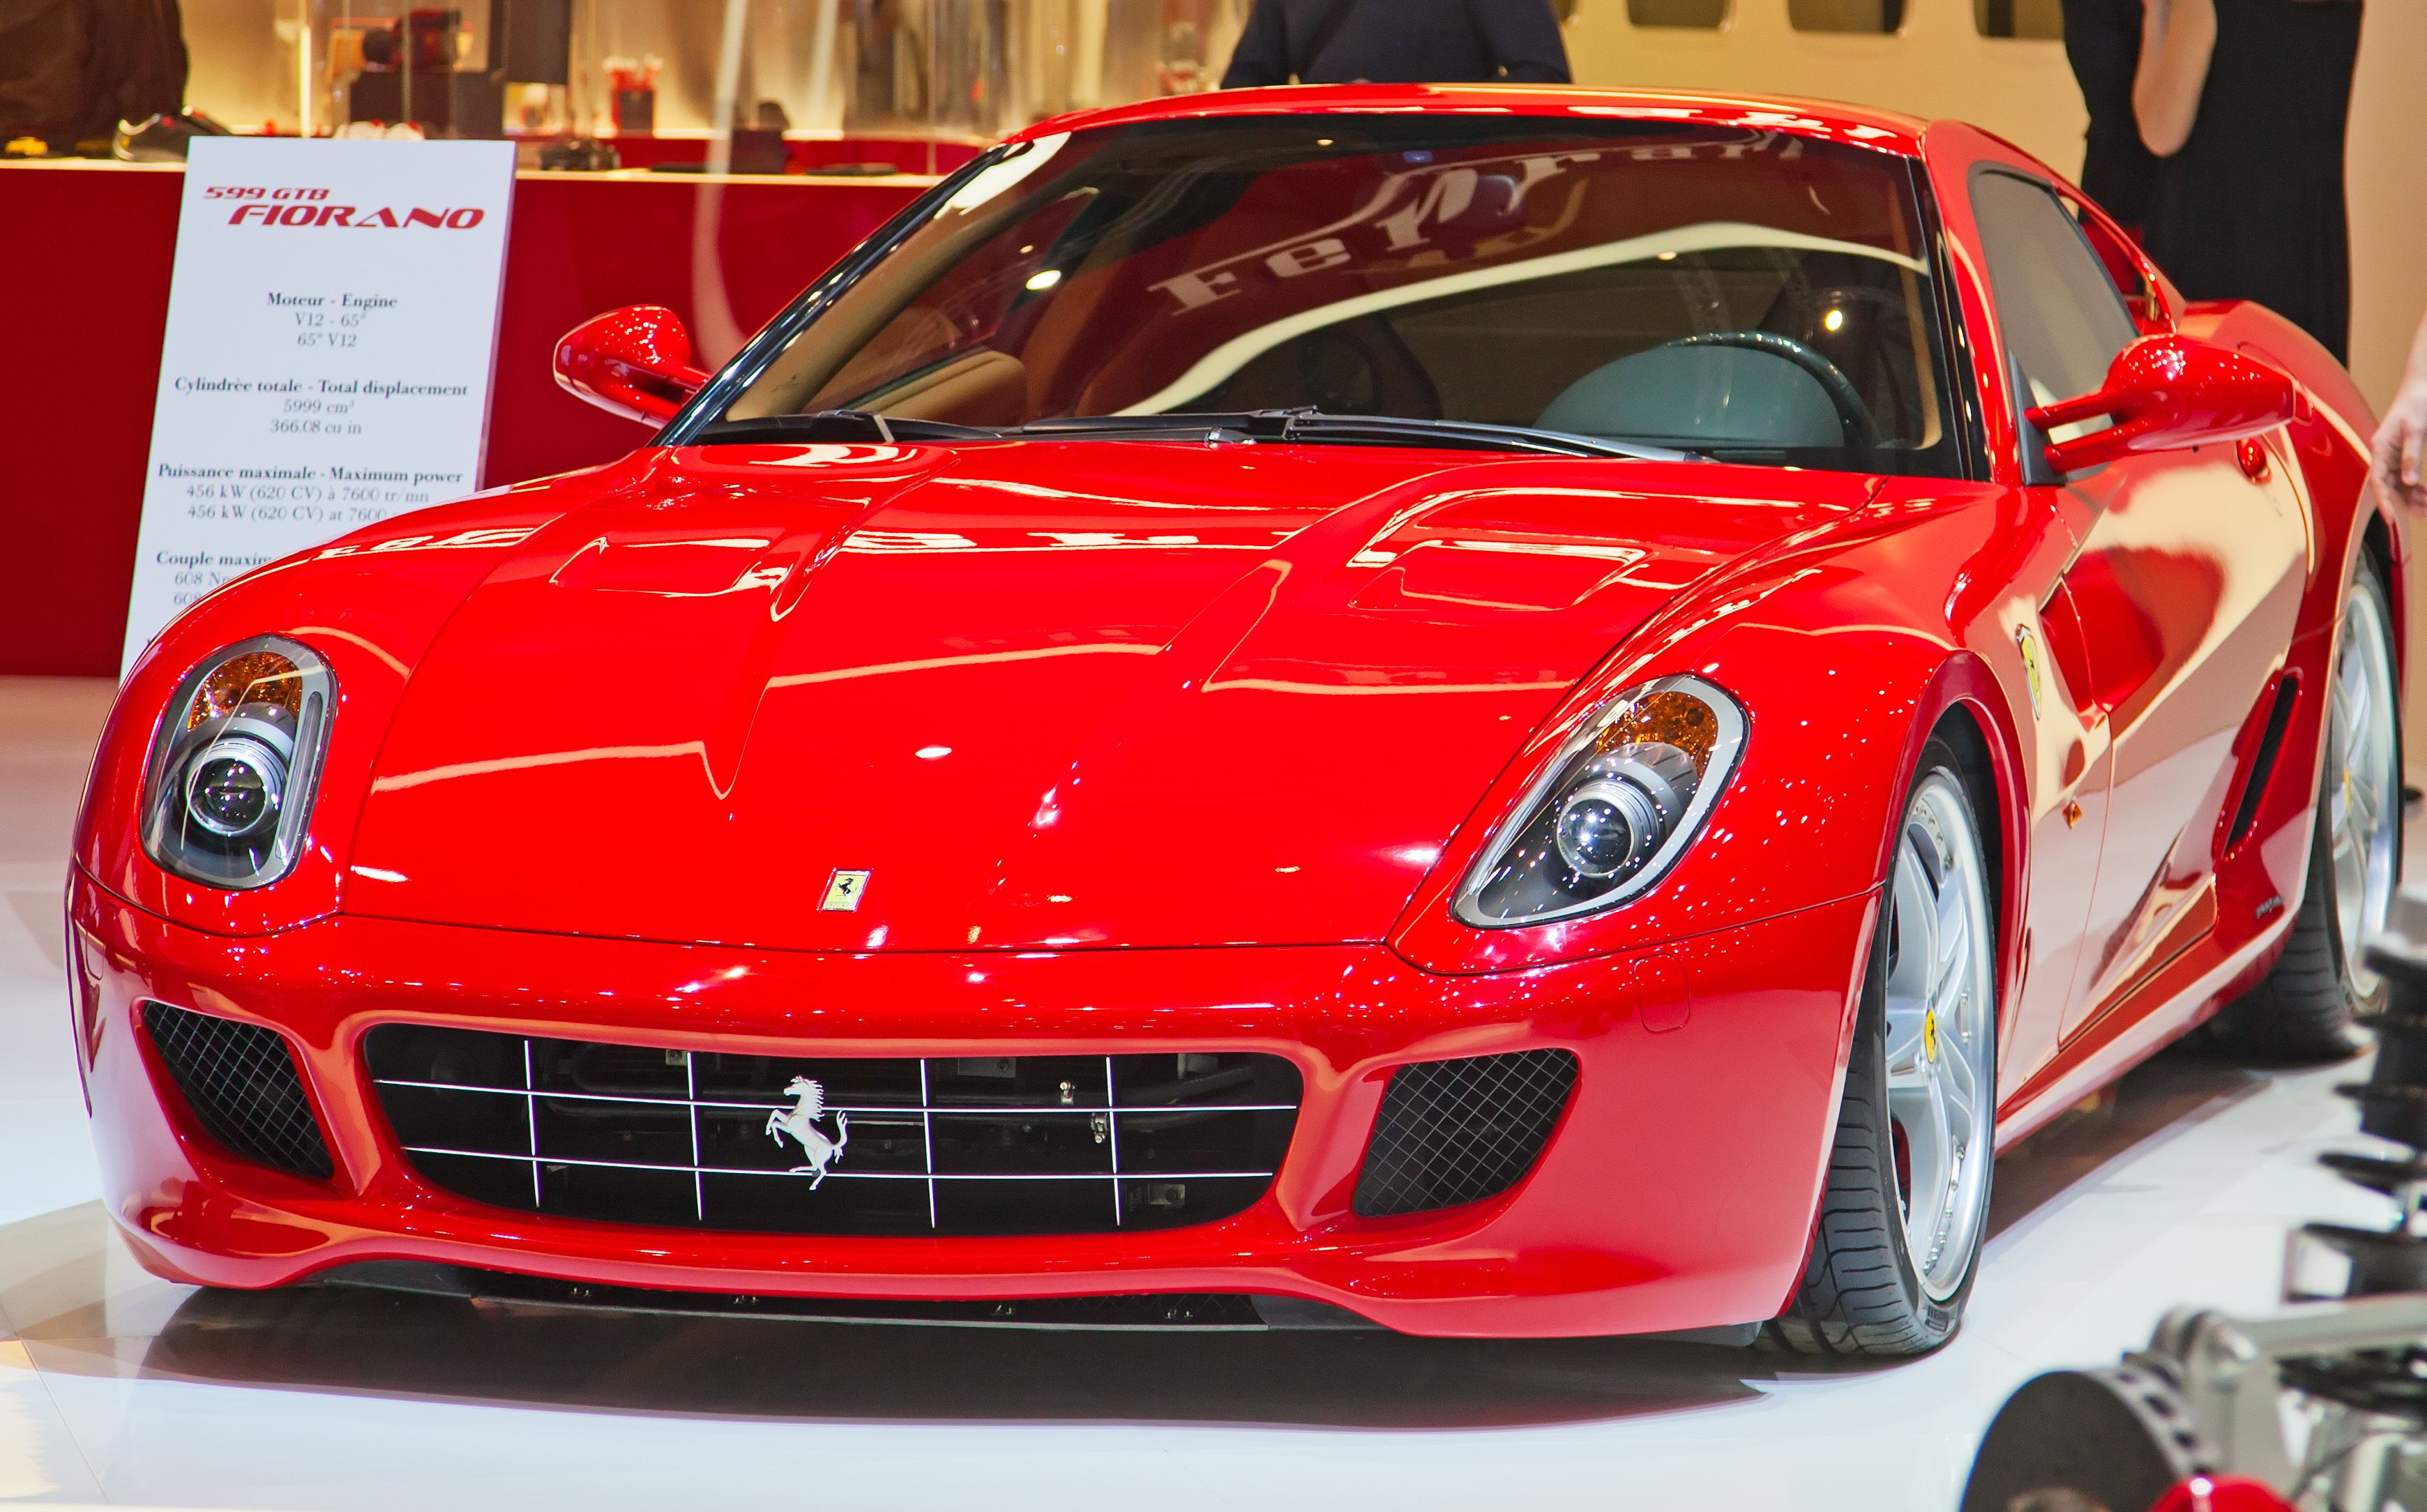 GENEVA - MARCH 8: THE FERRARI 599 GTB FIORANO ON THE 81ST INTERNATIONAL MOTOR SHOW PALEXPO-GENEVA ON MARCH 8; 2011 IN GENEVA, SWITZERLAND. BY SWISSHIPPO